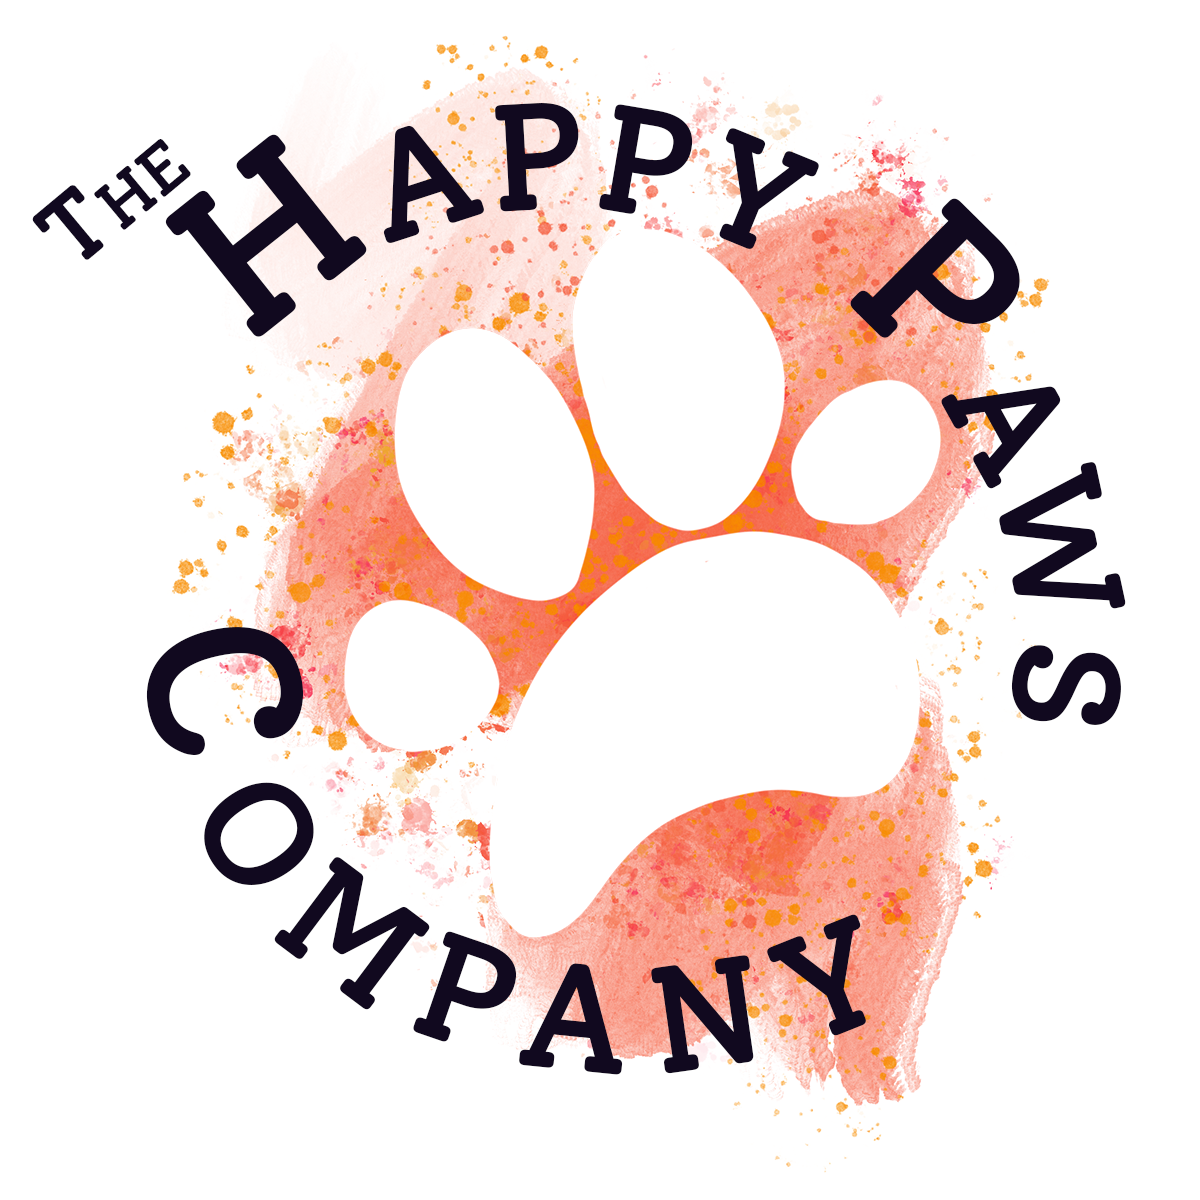 The Happy Paws Company